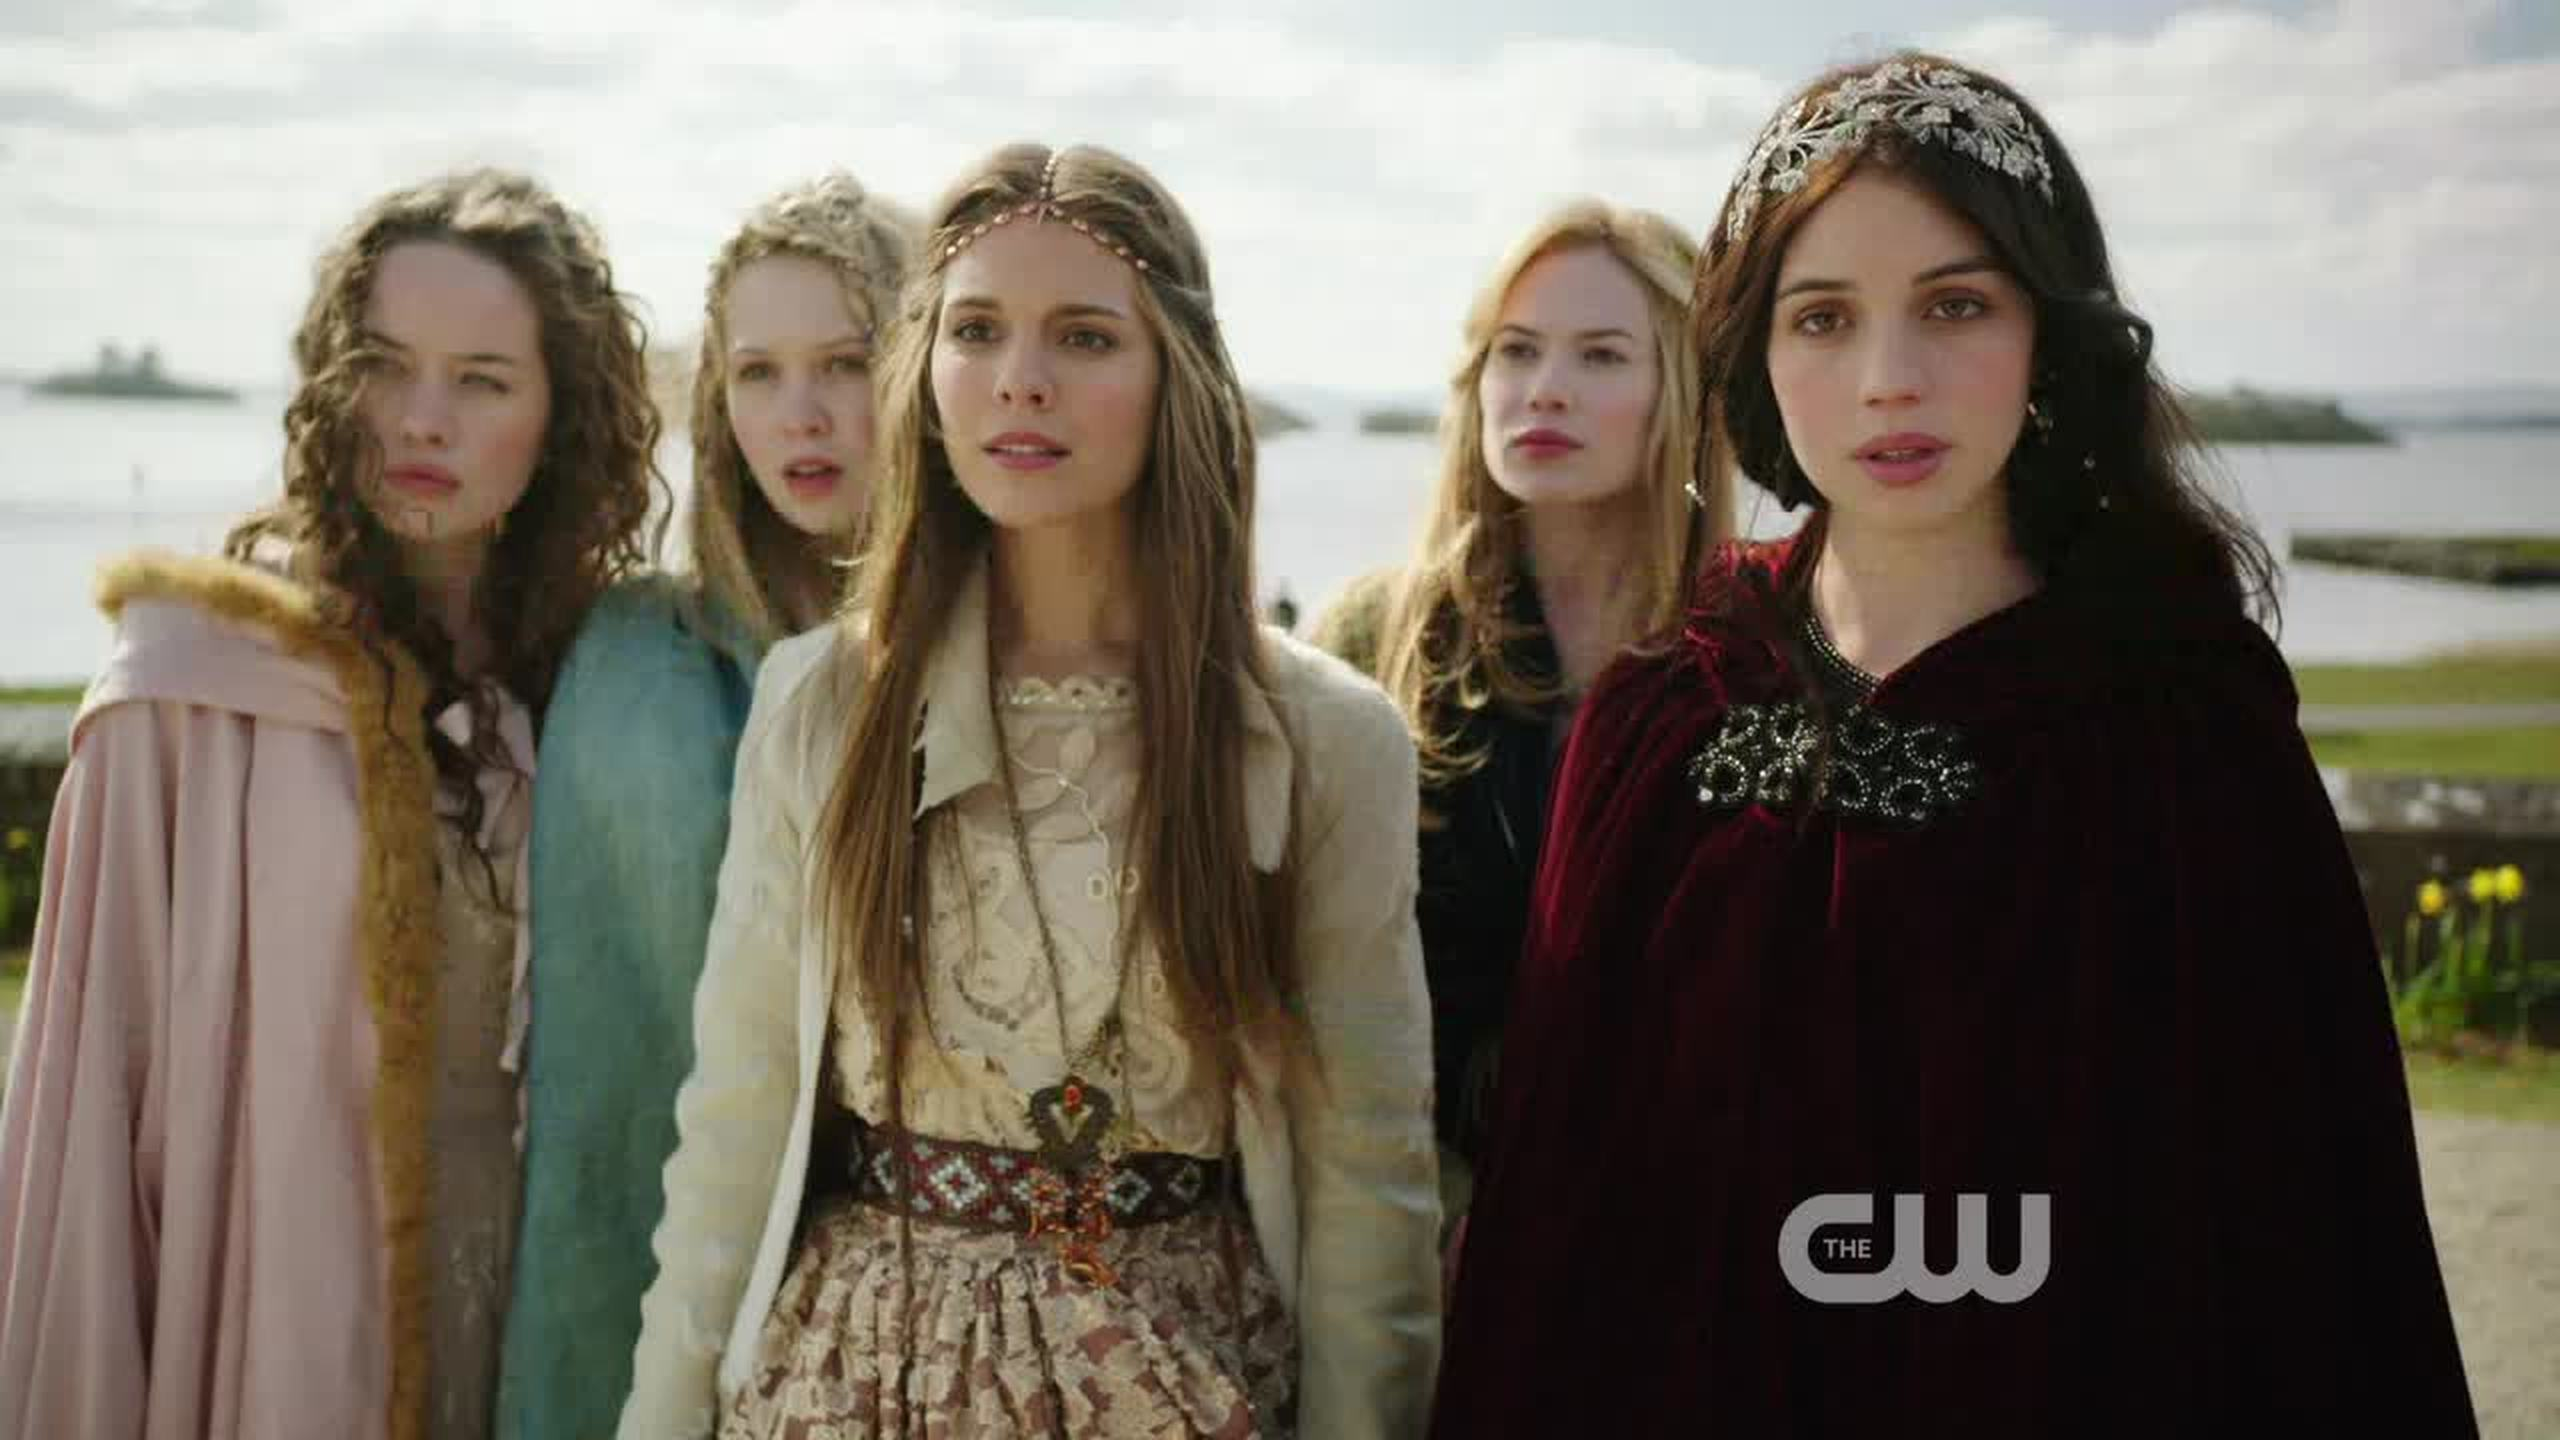 Pretty little liars in historical costumes